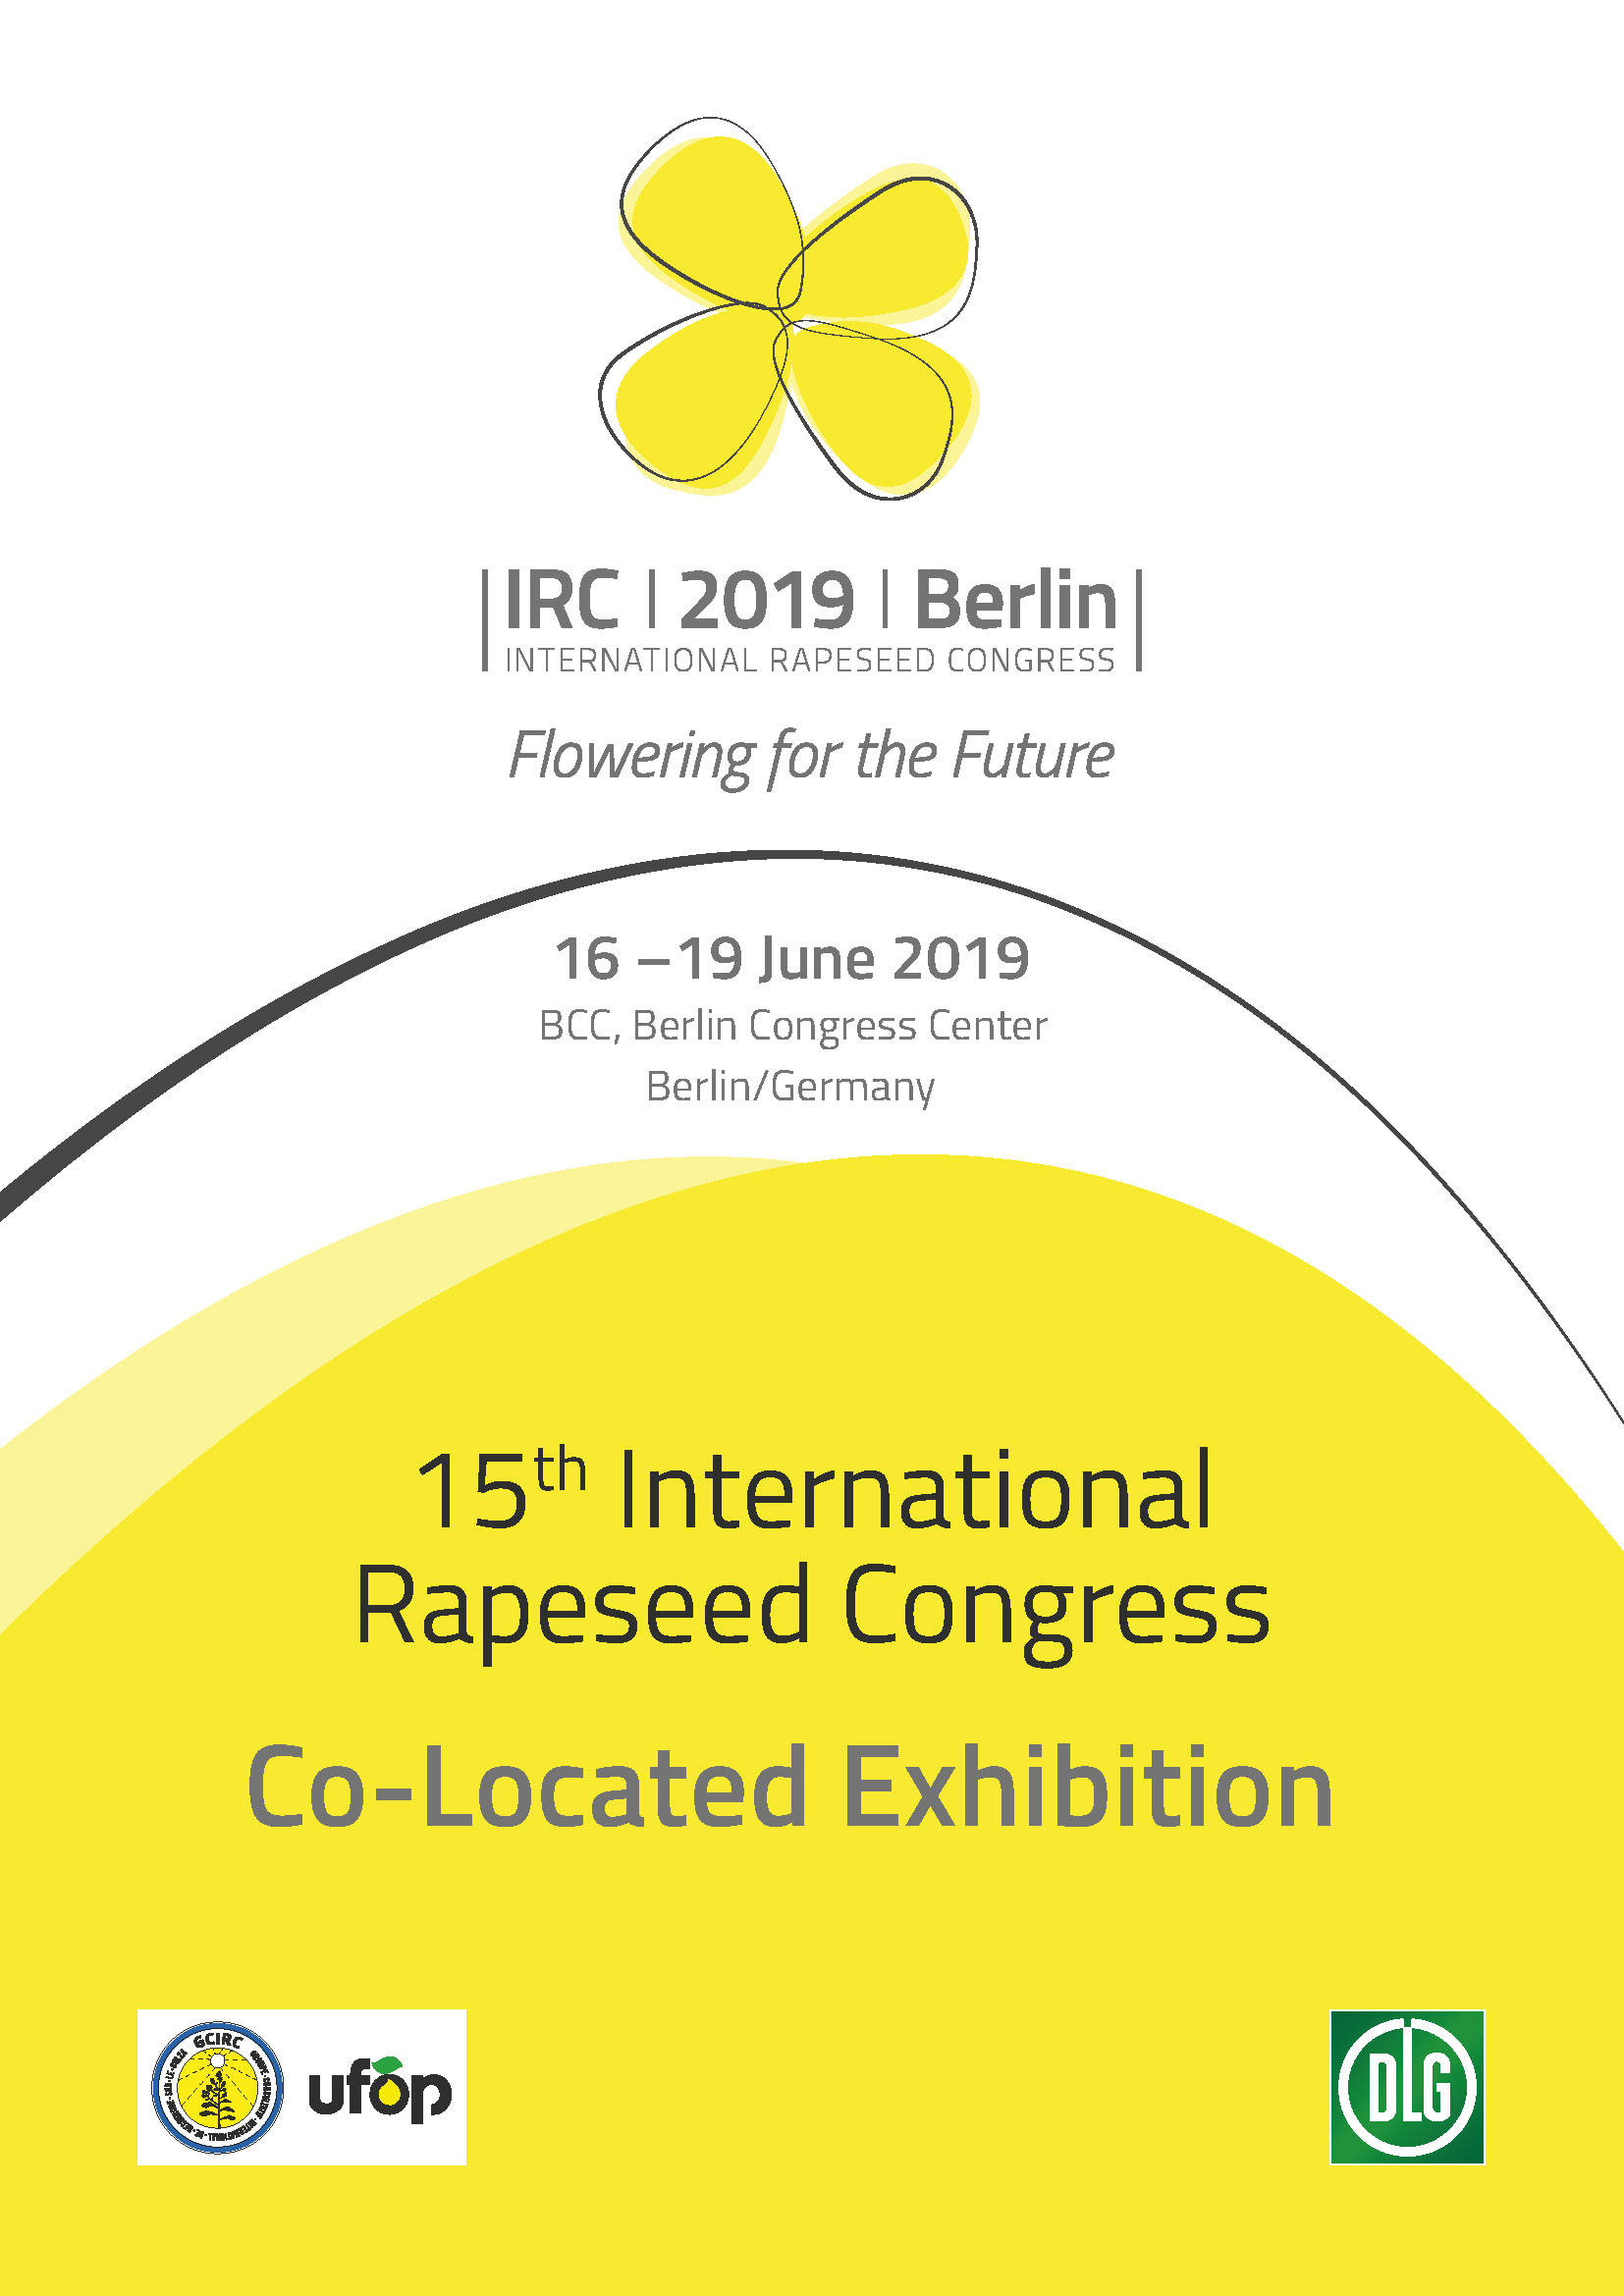 Cover Flyer_IRC2019_Co-located_Exhibition.jpg